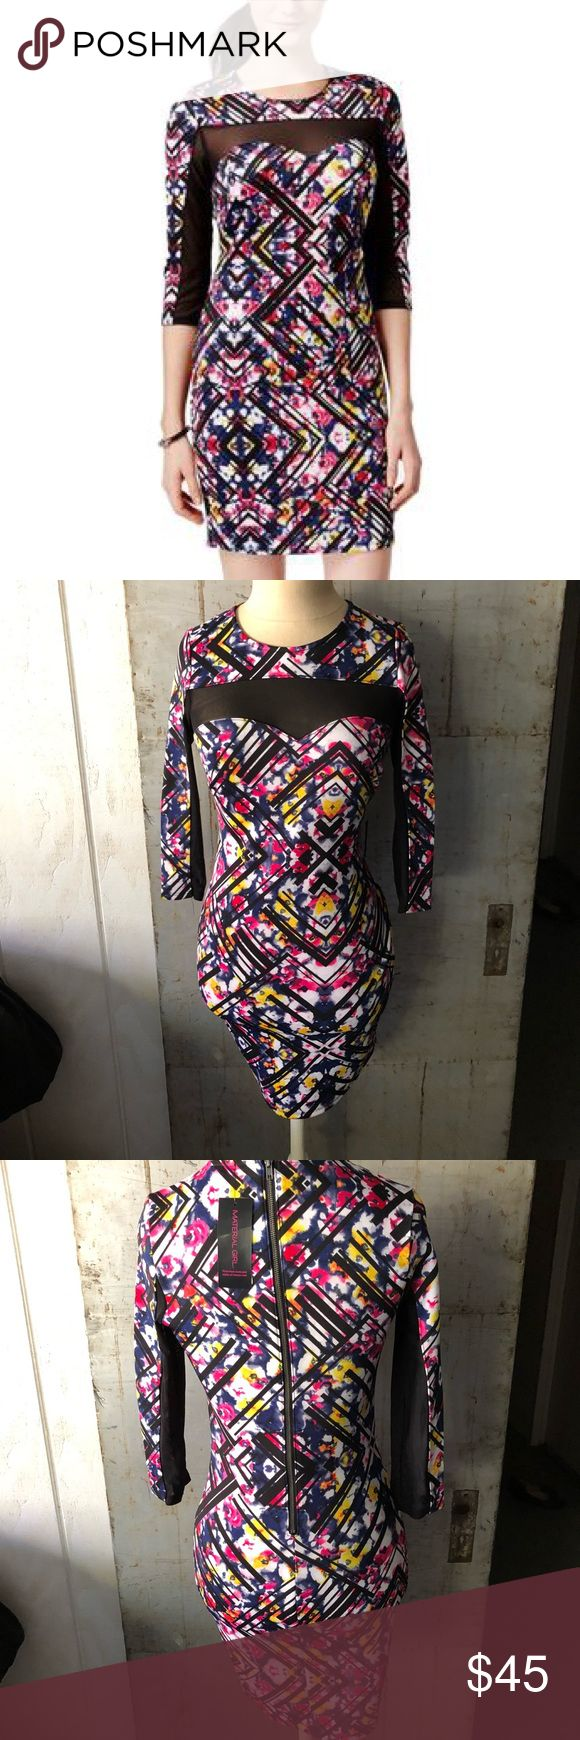 """Multi colored body-con dress Multi colored body-con dress with mesh Material: Body: 96% polyester 4% spandex Contrast: 97% polyester 3% spandex Length xs: 35"""" M 36"""" Brand: material girls via Macy's  📊Use size chart for fit  🚫modeling or trades (askers will be ignored) or lowballing LC ✅ will consider offers made through BLUE offer button.   ✅ bundle 3 or more items for a custom offer using bundle feature 🌻 Social media: Business Instagram @lovelyinlilacofficial Macy's Dresses"""